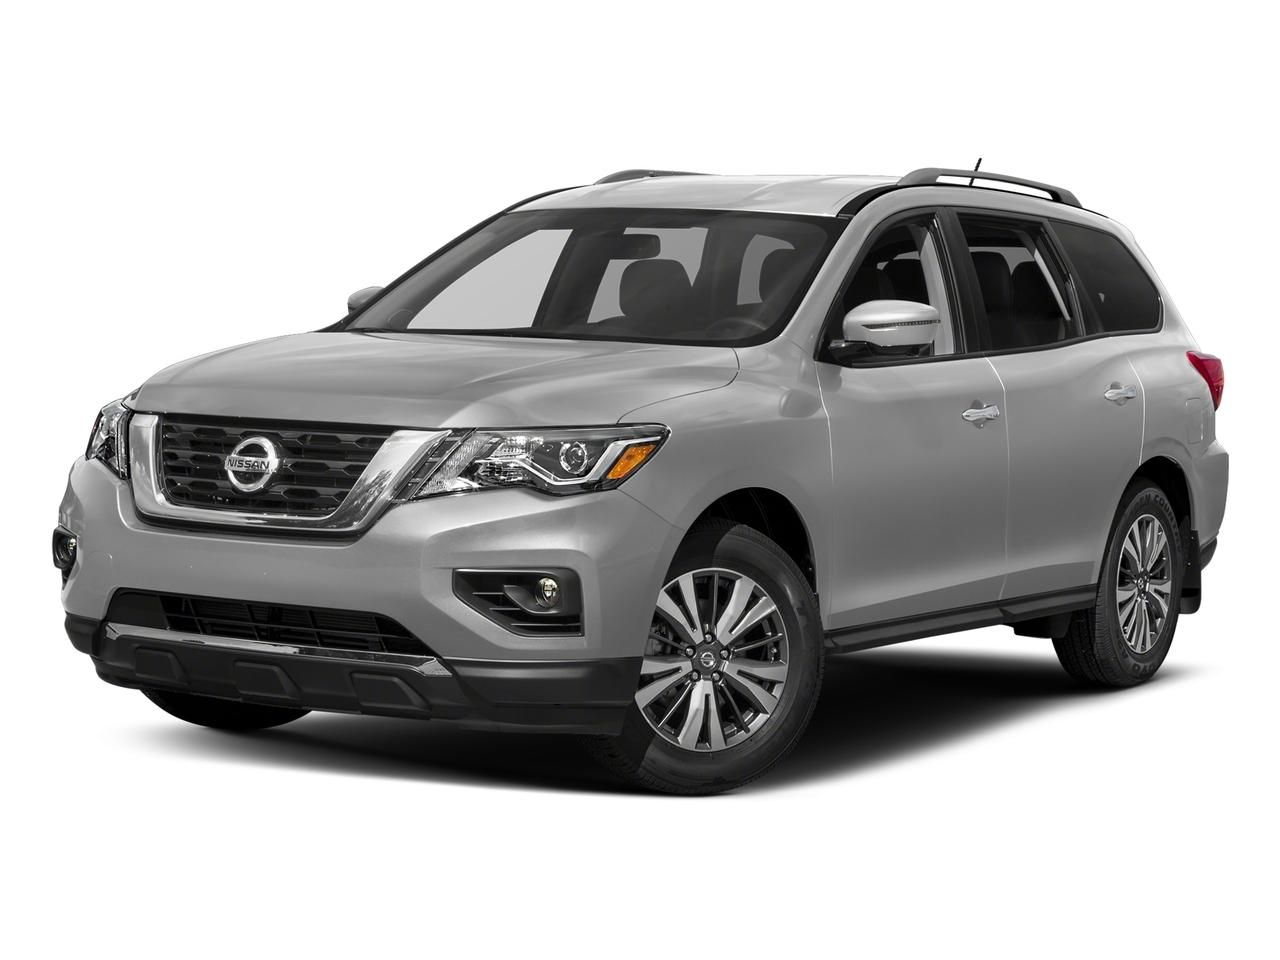 2017 Nissan Pathfinder Vehicle Photo in Appleton, WI 54913